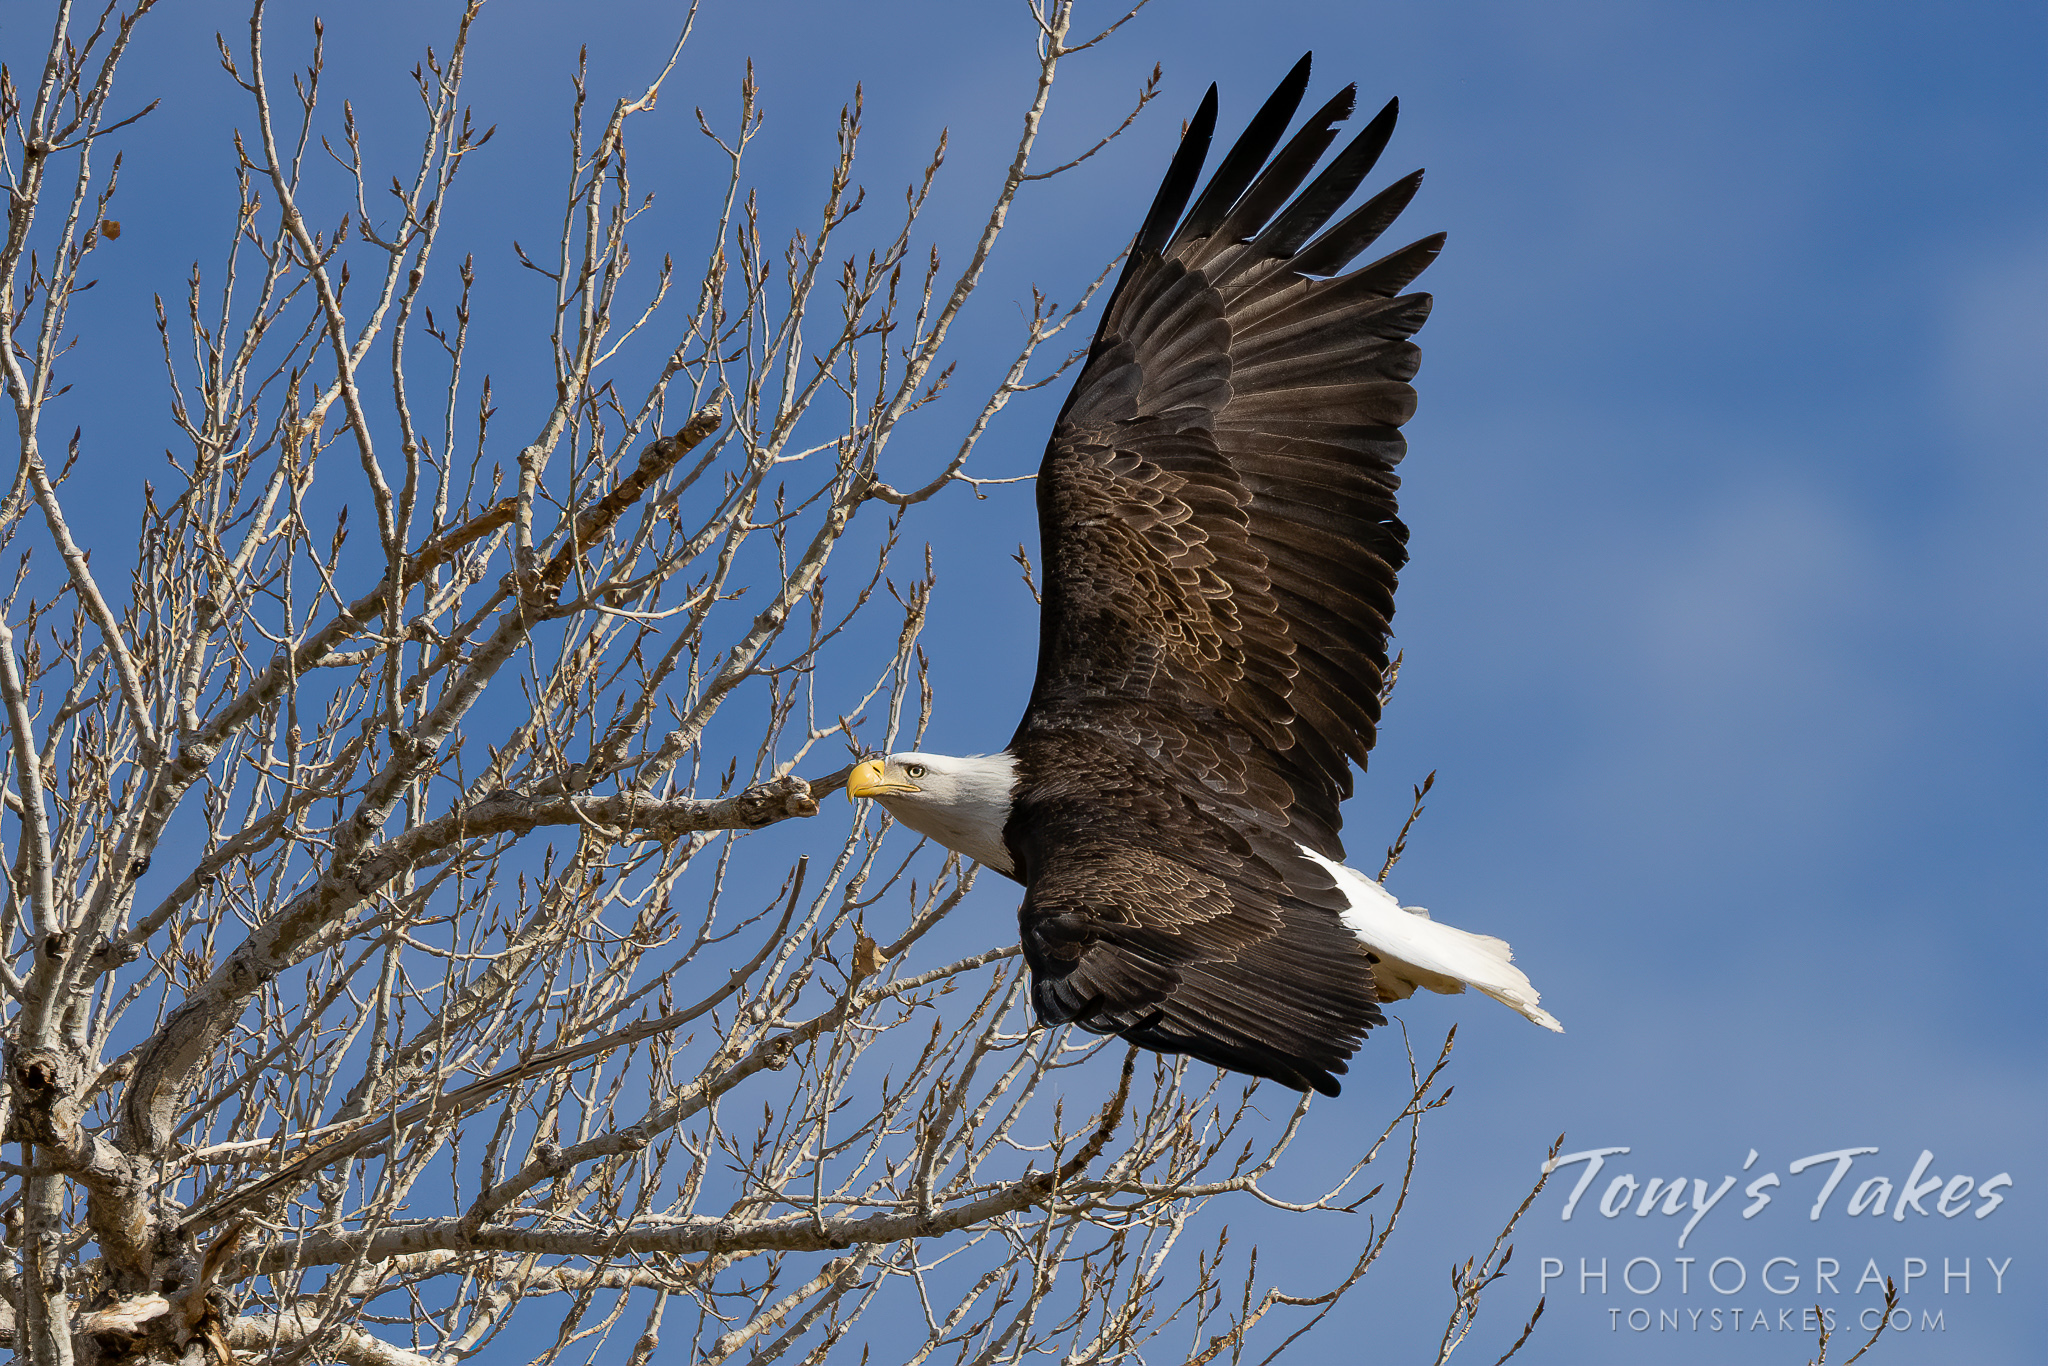 Banking bald eagle for Freedom Friday